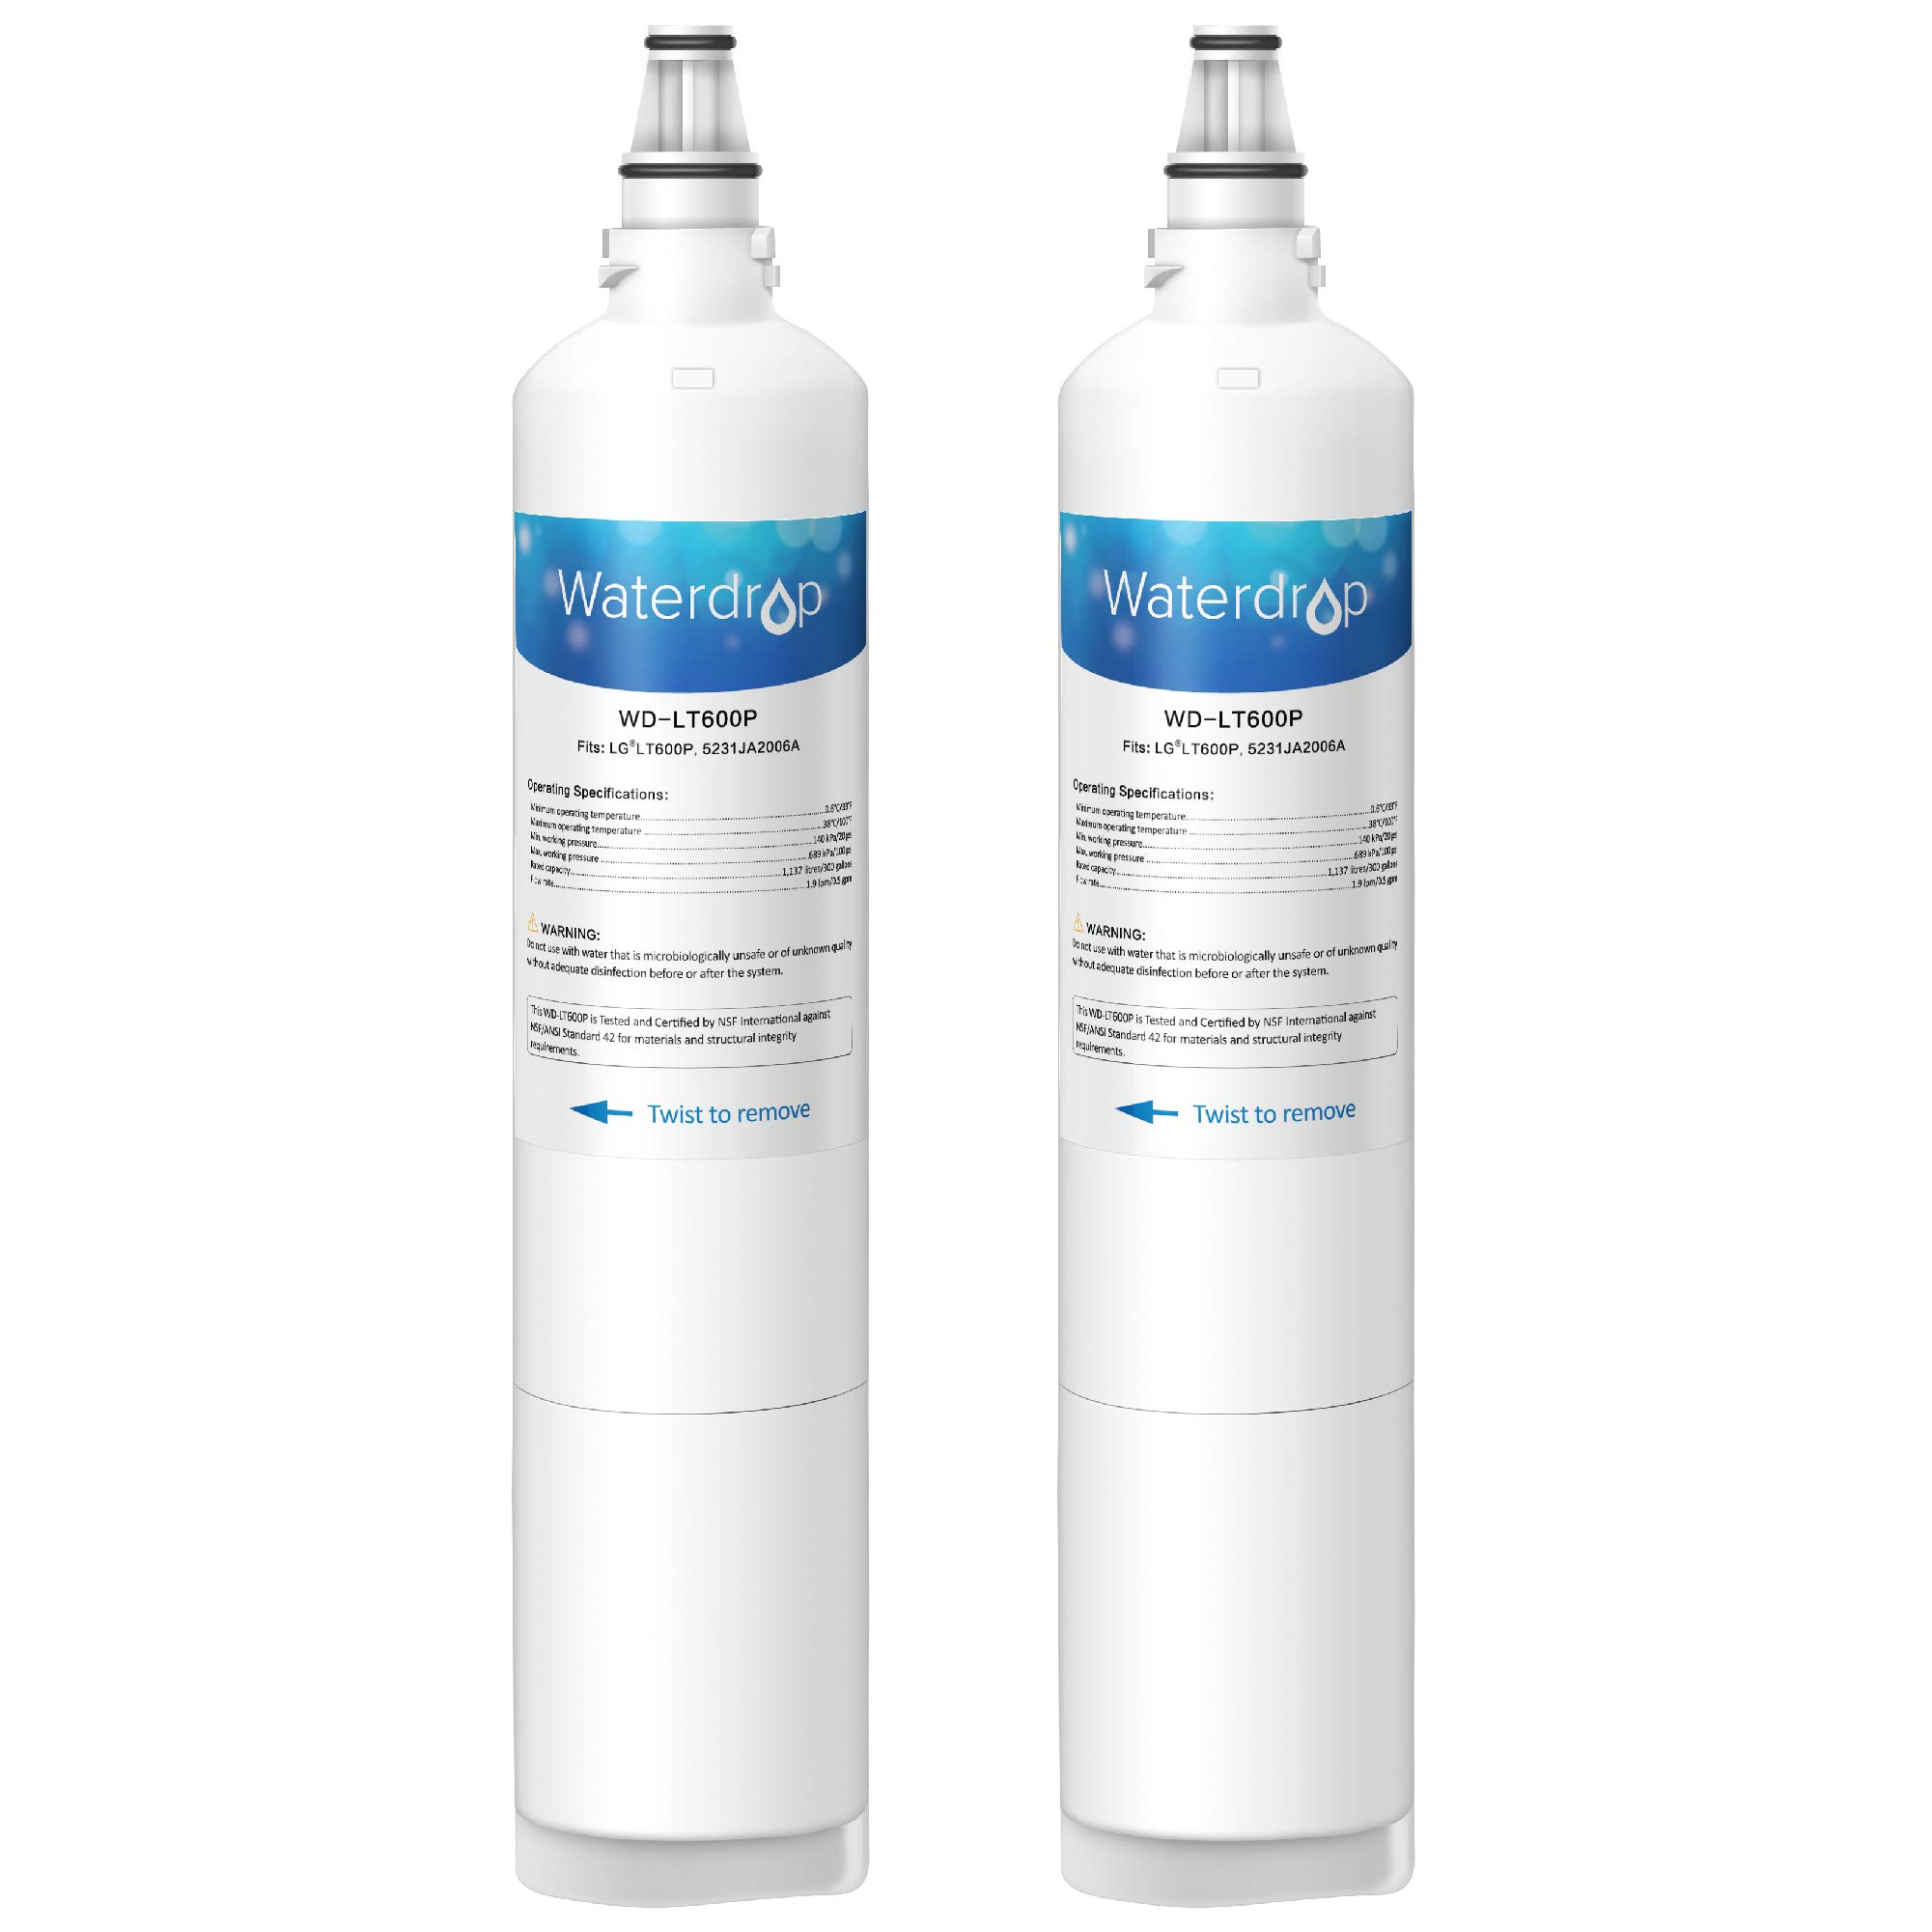 Waterdrop LT600P Replacemnet Refrigerator Water Filter, Compatible with LG LT600P, 5231JA2006A, 5231JA2006B, KENMORE 46-9990, 9990, 469990, Standard, 2 Pack